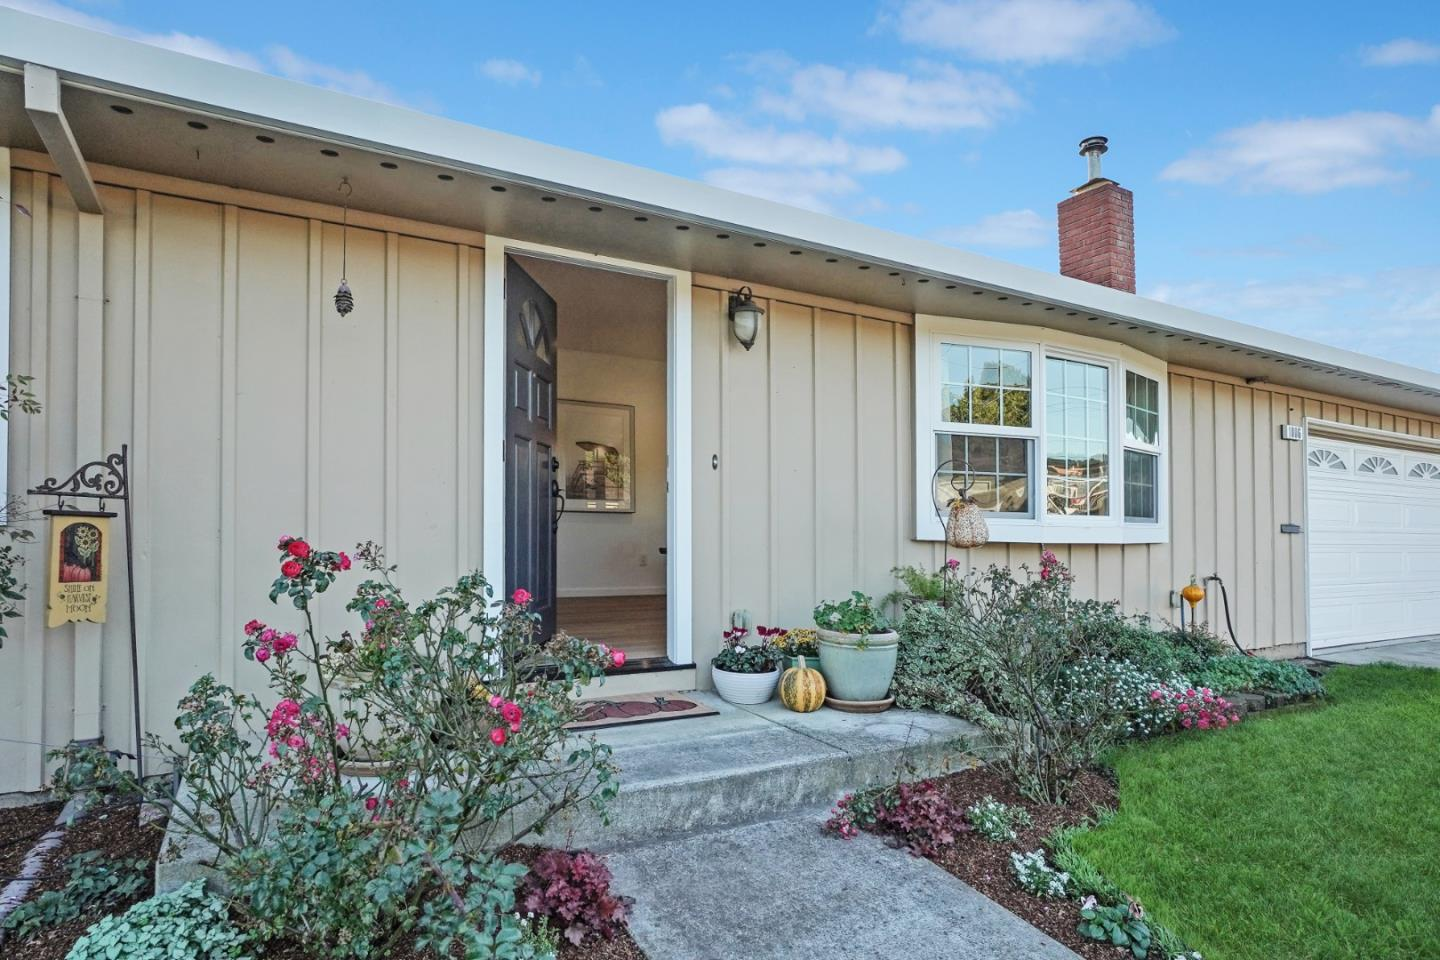 Beautifully remodeled home in a quiet coastal neighborhood features 3 bedrooms 2 baths & 1,240+/- square feet of living space. Open concept home has wide wood plank flooring throughout the kitchen,living area,& master bedroom. The eat-in kitchen is open to the living area & features a center island. There is a beautiful glass-paned door to the back garden making outdoor entertaining a breeze,or just some relaxing time in the hot tub.Side yard would have room for RV parking or?? The living room has a bay window and a pellet stove with built-in shelving units on either side.The two guest bedrooms have new carpet, one features a closet with a built-in unit that has a drop-down desk the other guest bedroom has a walk-in closet.The spacious master bedroom situated at the end of the hallway has an en-suite and a large walk-in closet.The two-car garage includes the laundry area & has plenty of storage.The location of this home is close to downtown Half Moon Bay,beaches, & the coastal trail.